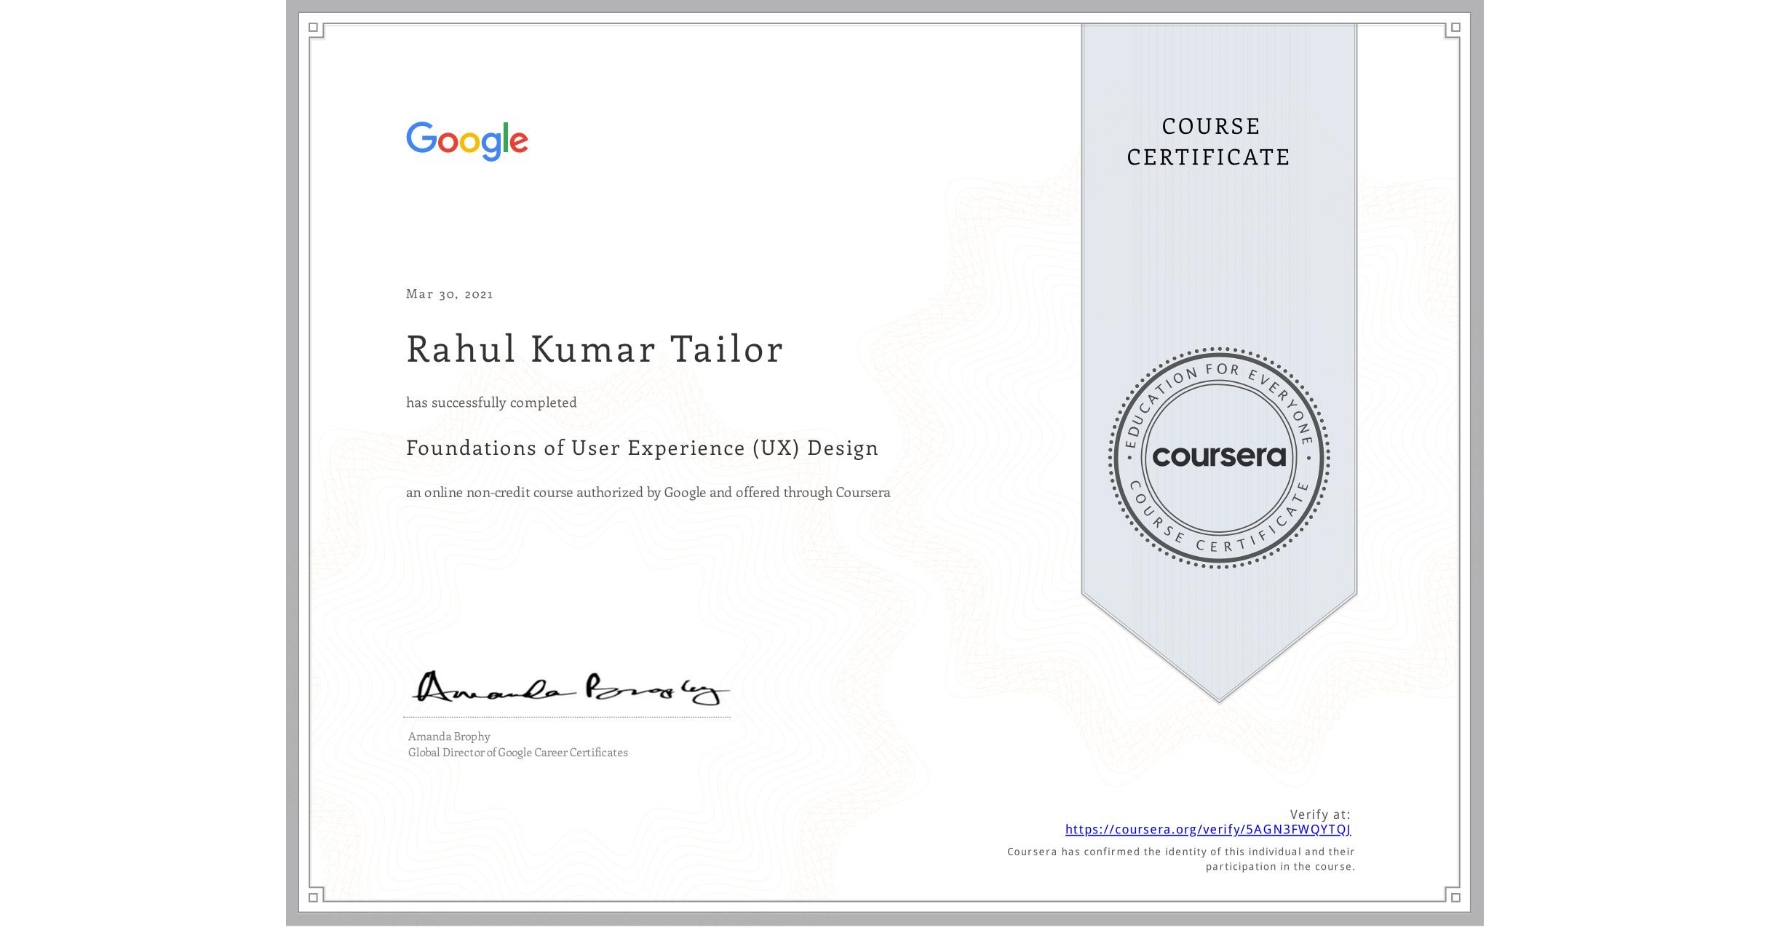 View certificate for Rahul Kumar Tailor, Foundations of User Experience (UX) Design, an online non-credit course authorized by Google and offered through Coursera